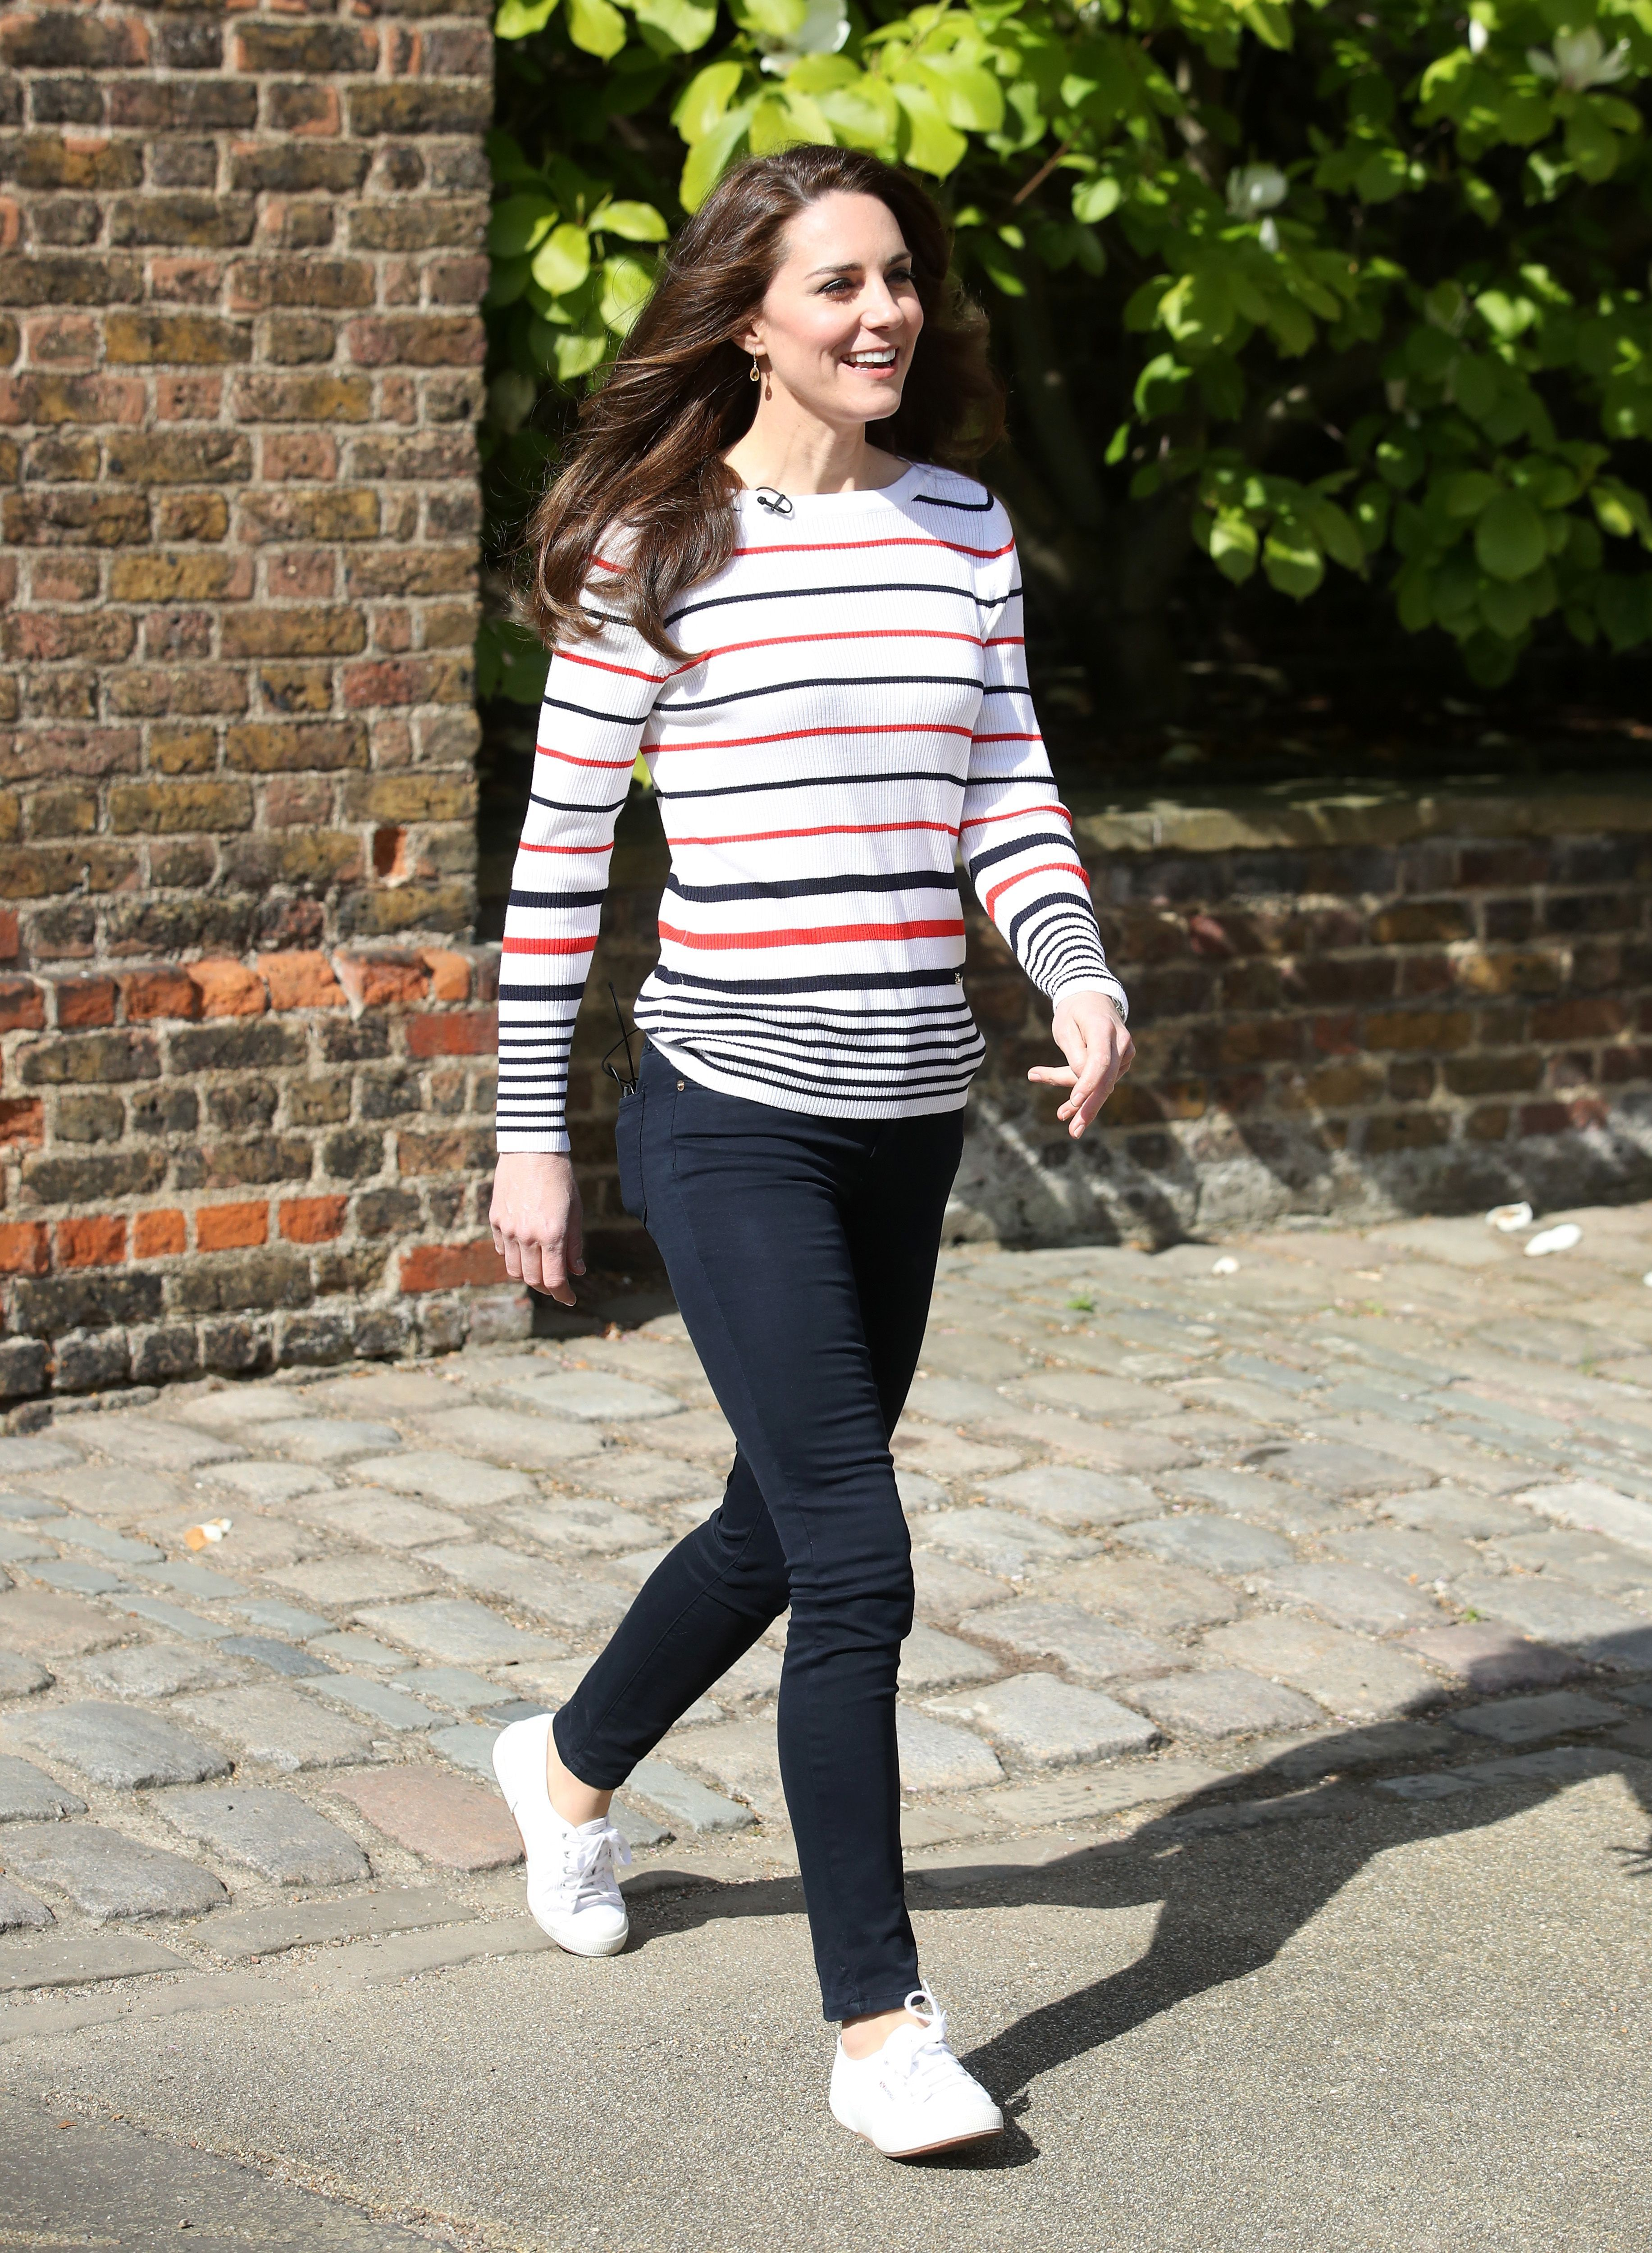 Shop Now Superga Cotu Sneakers, $65 Kate wasn't the first royal to purchase a pair of these affordable Italian sneakers— Princess Diana wore them, too .